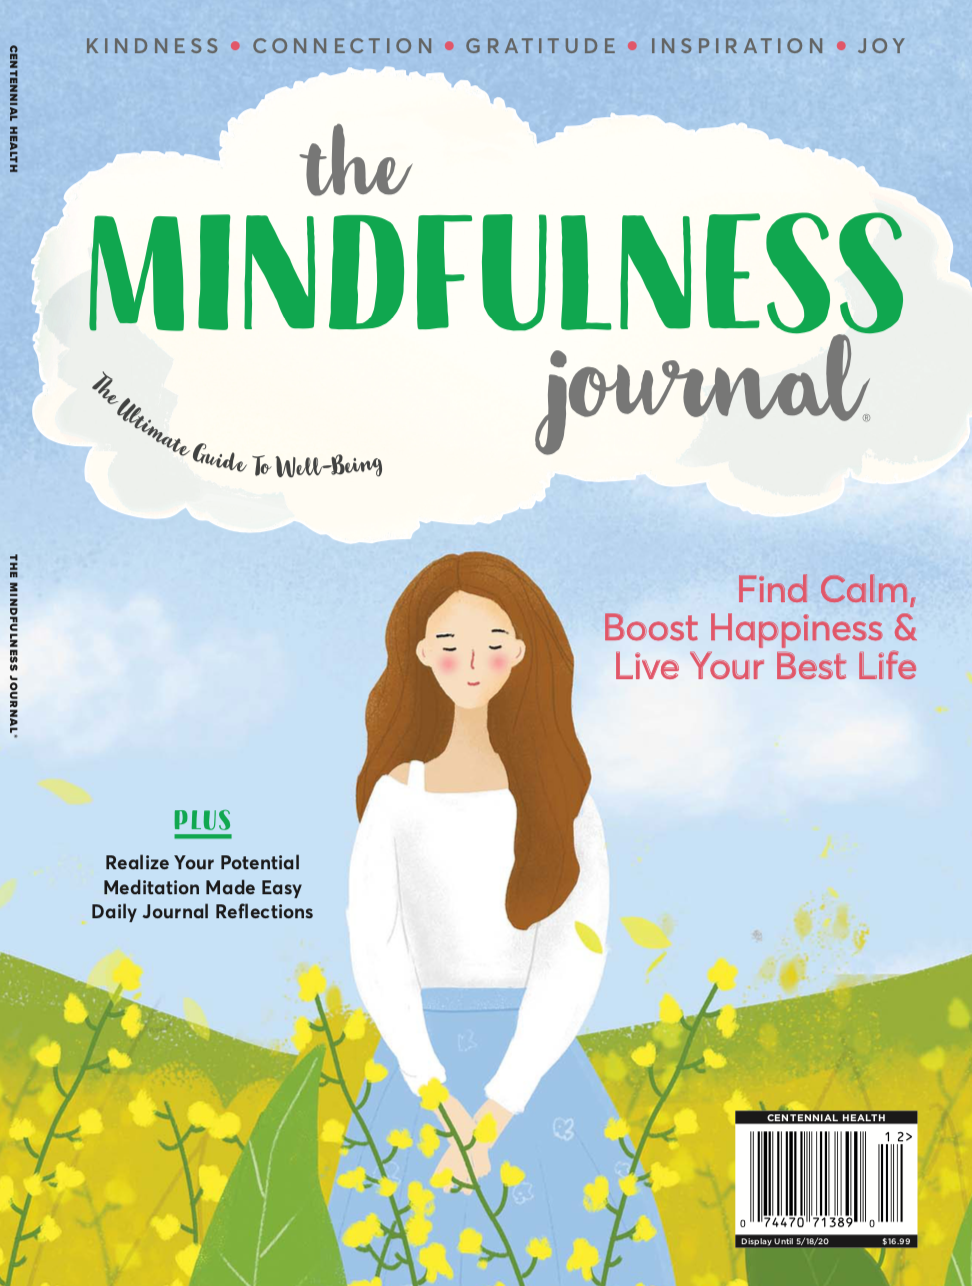 Mindfulness Journal April 2020 issue